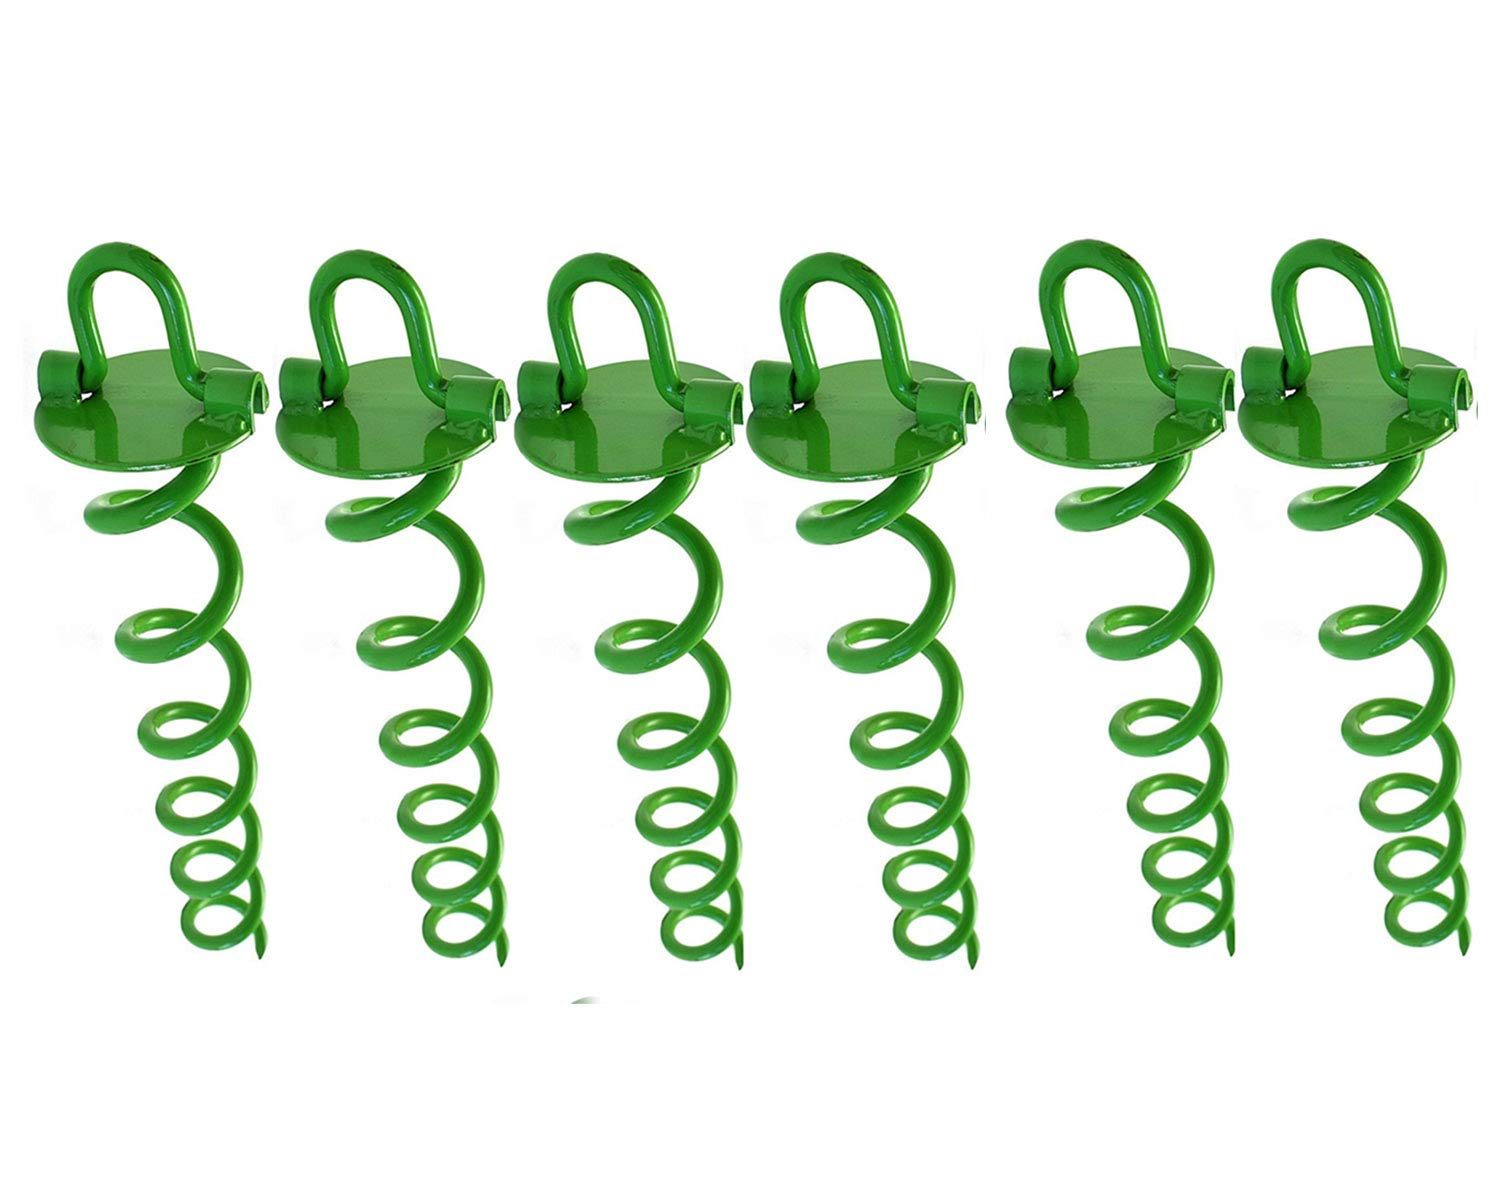 Ashman 16 Inch Spiral Ground Anchor Green Color - Ideal for Securing Animals, Tents, Canopies, Sheds, Car Ports, Swing Sets (Pack of 6) by AshmanOnline